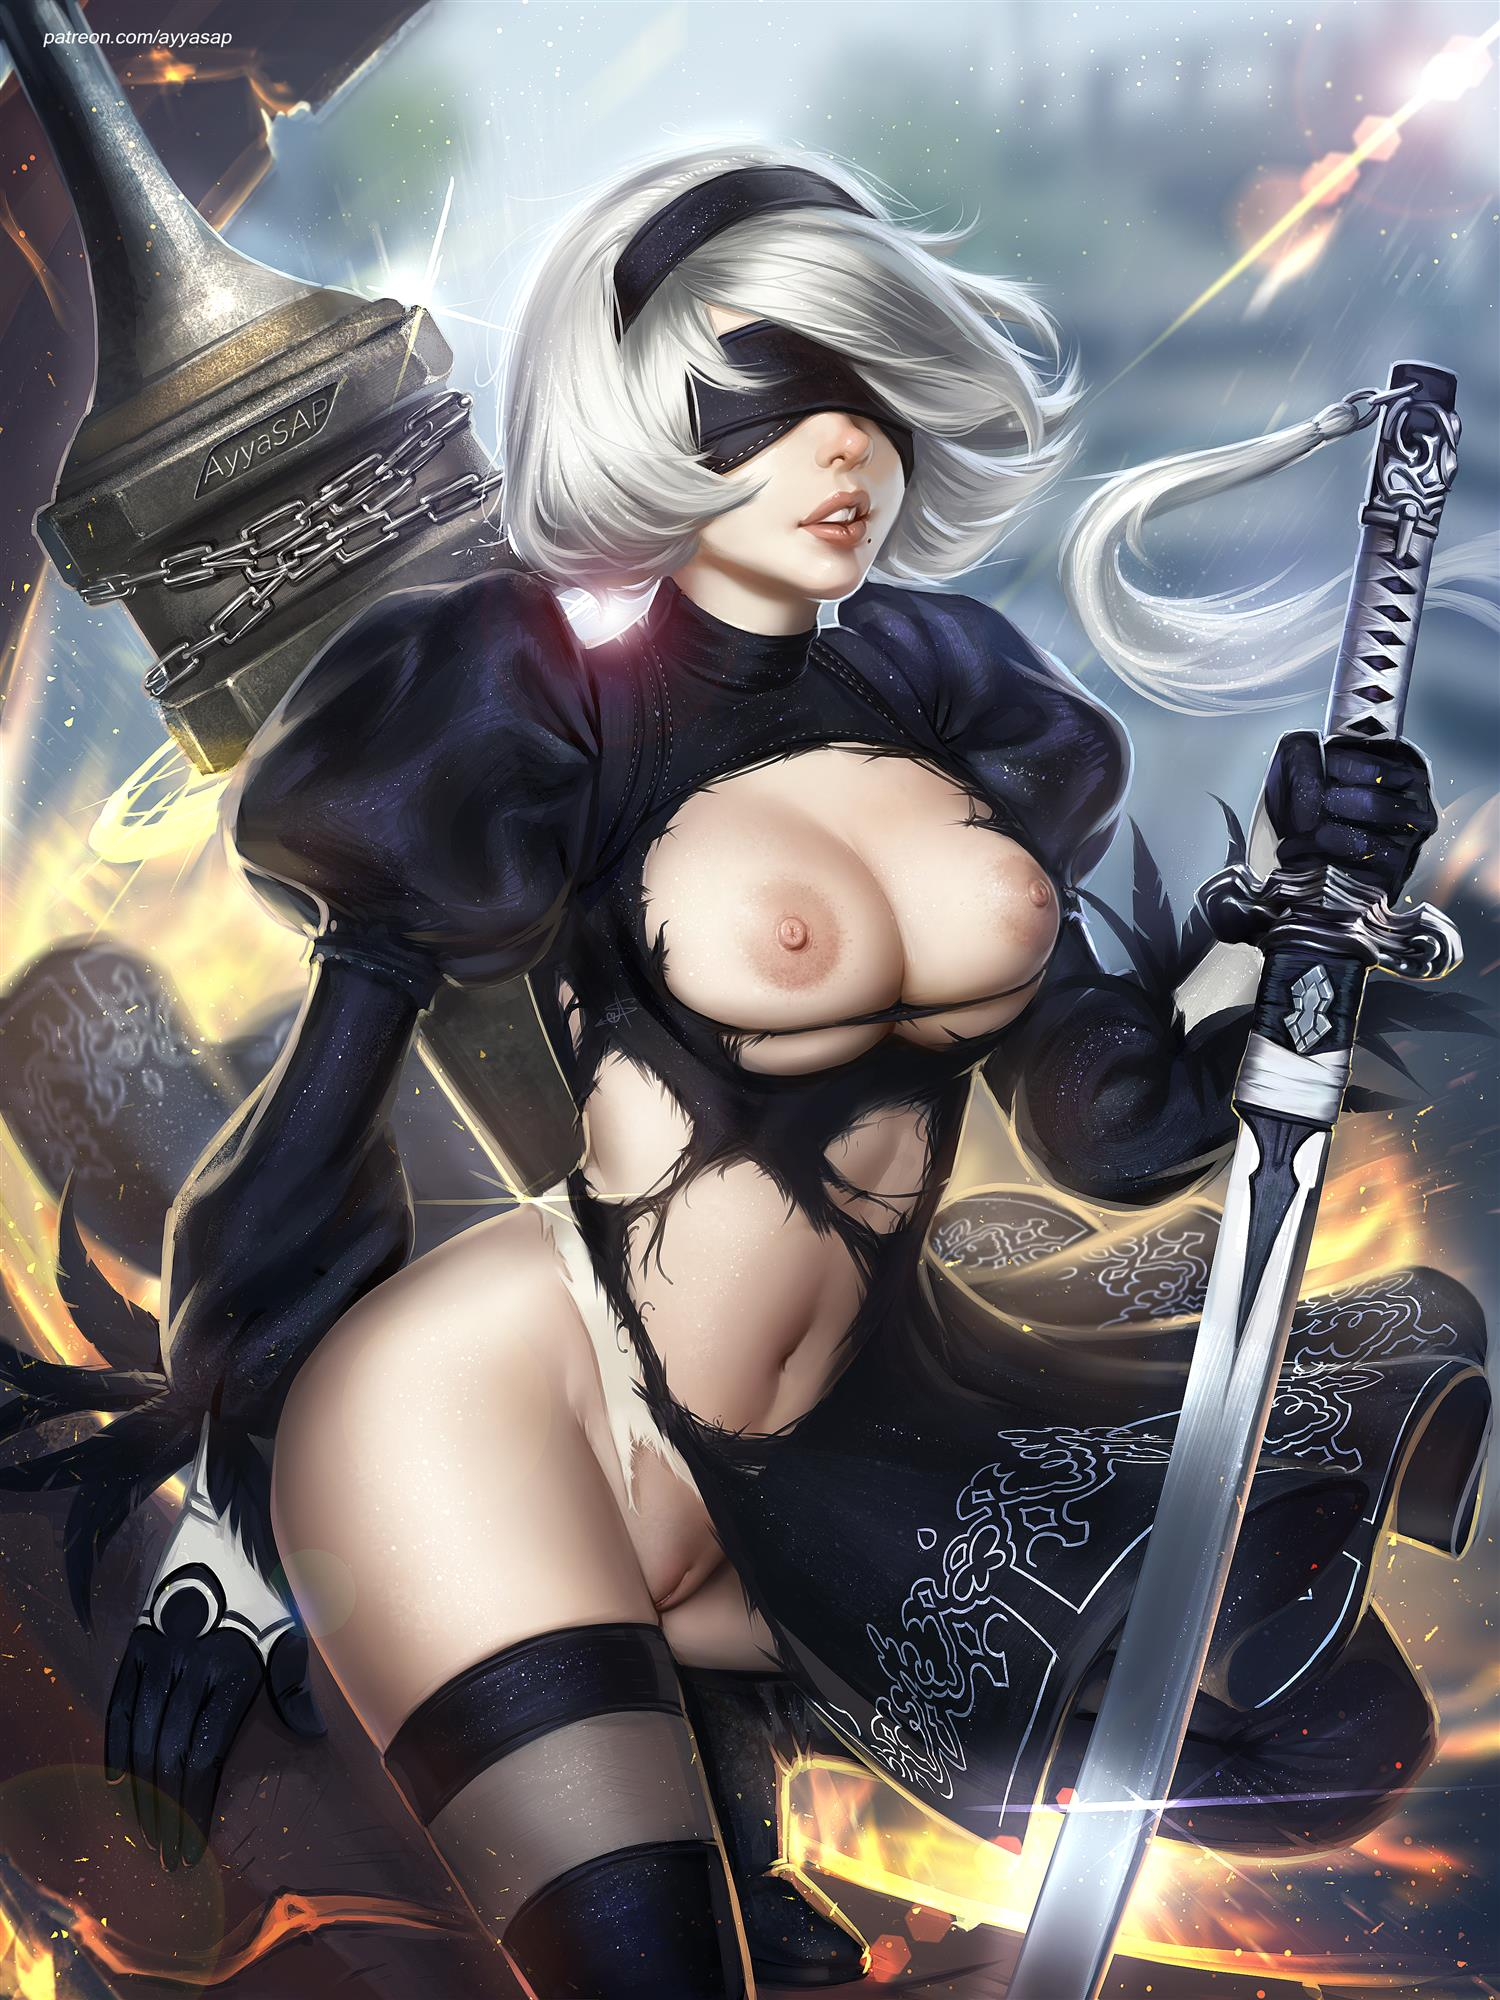 Nier Automata 2B nude high quality art